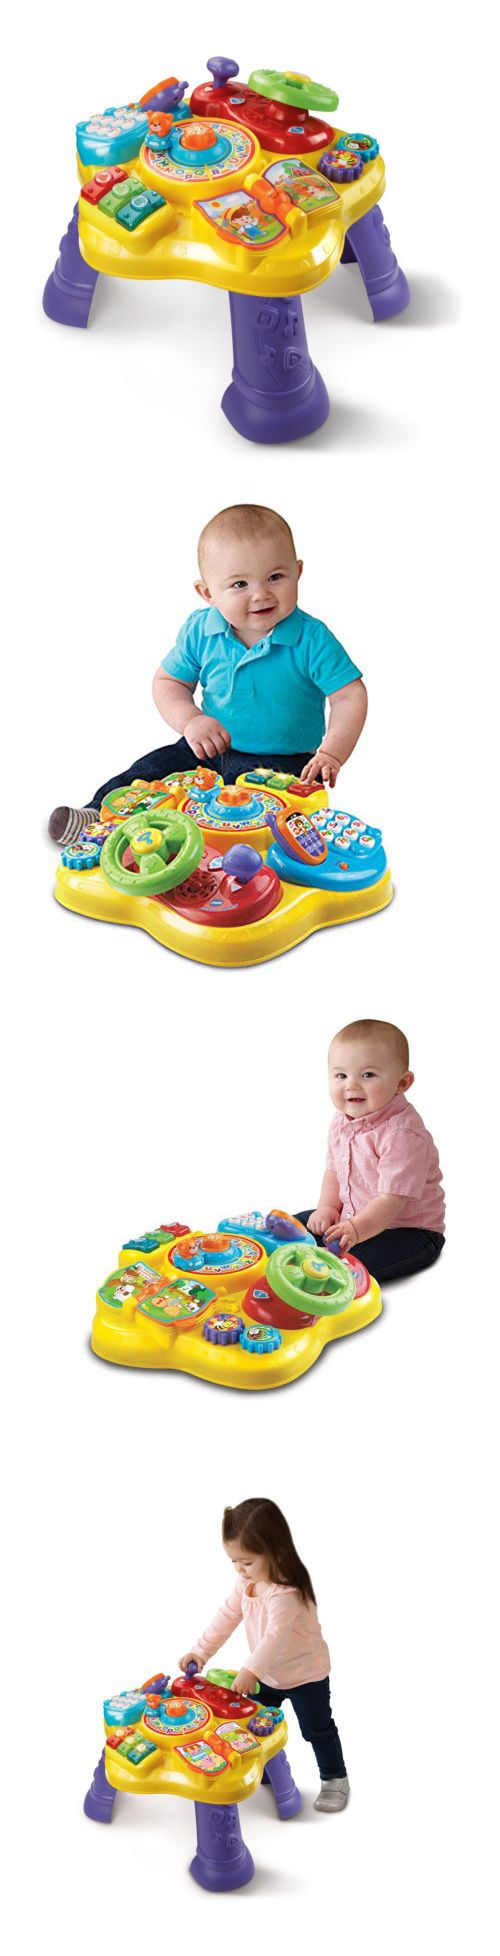 Baby: Baby Toy Activity Table Vtech Learning Toddler Musical Educational Developmental -> BUY IT NOW ONLY: $33.69 on eBay!